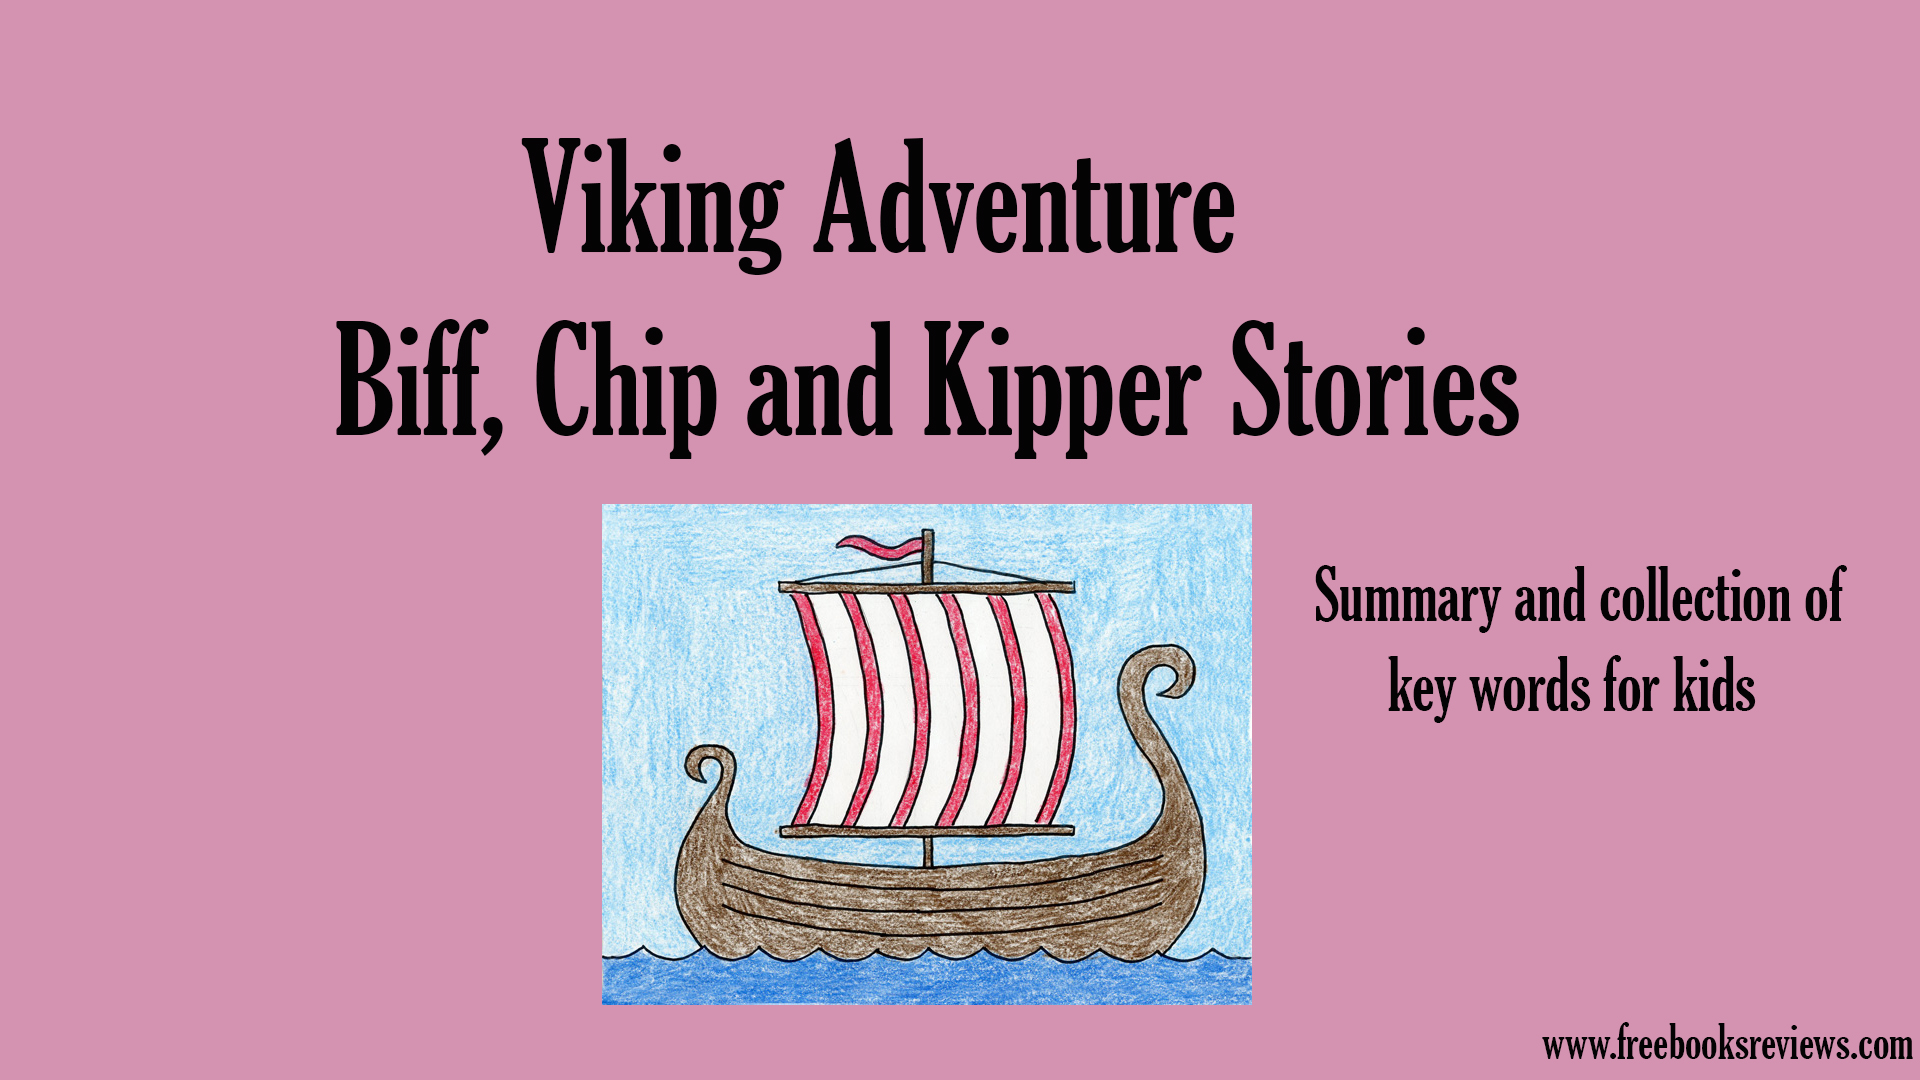 Viking Adventure-Biff, Chip and Kipper Stores